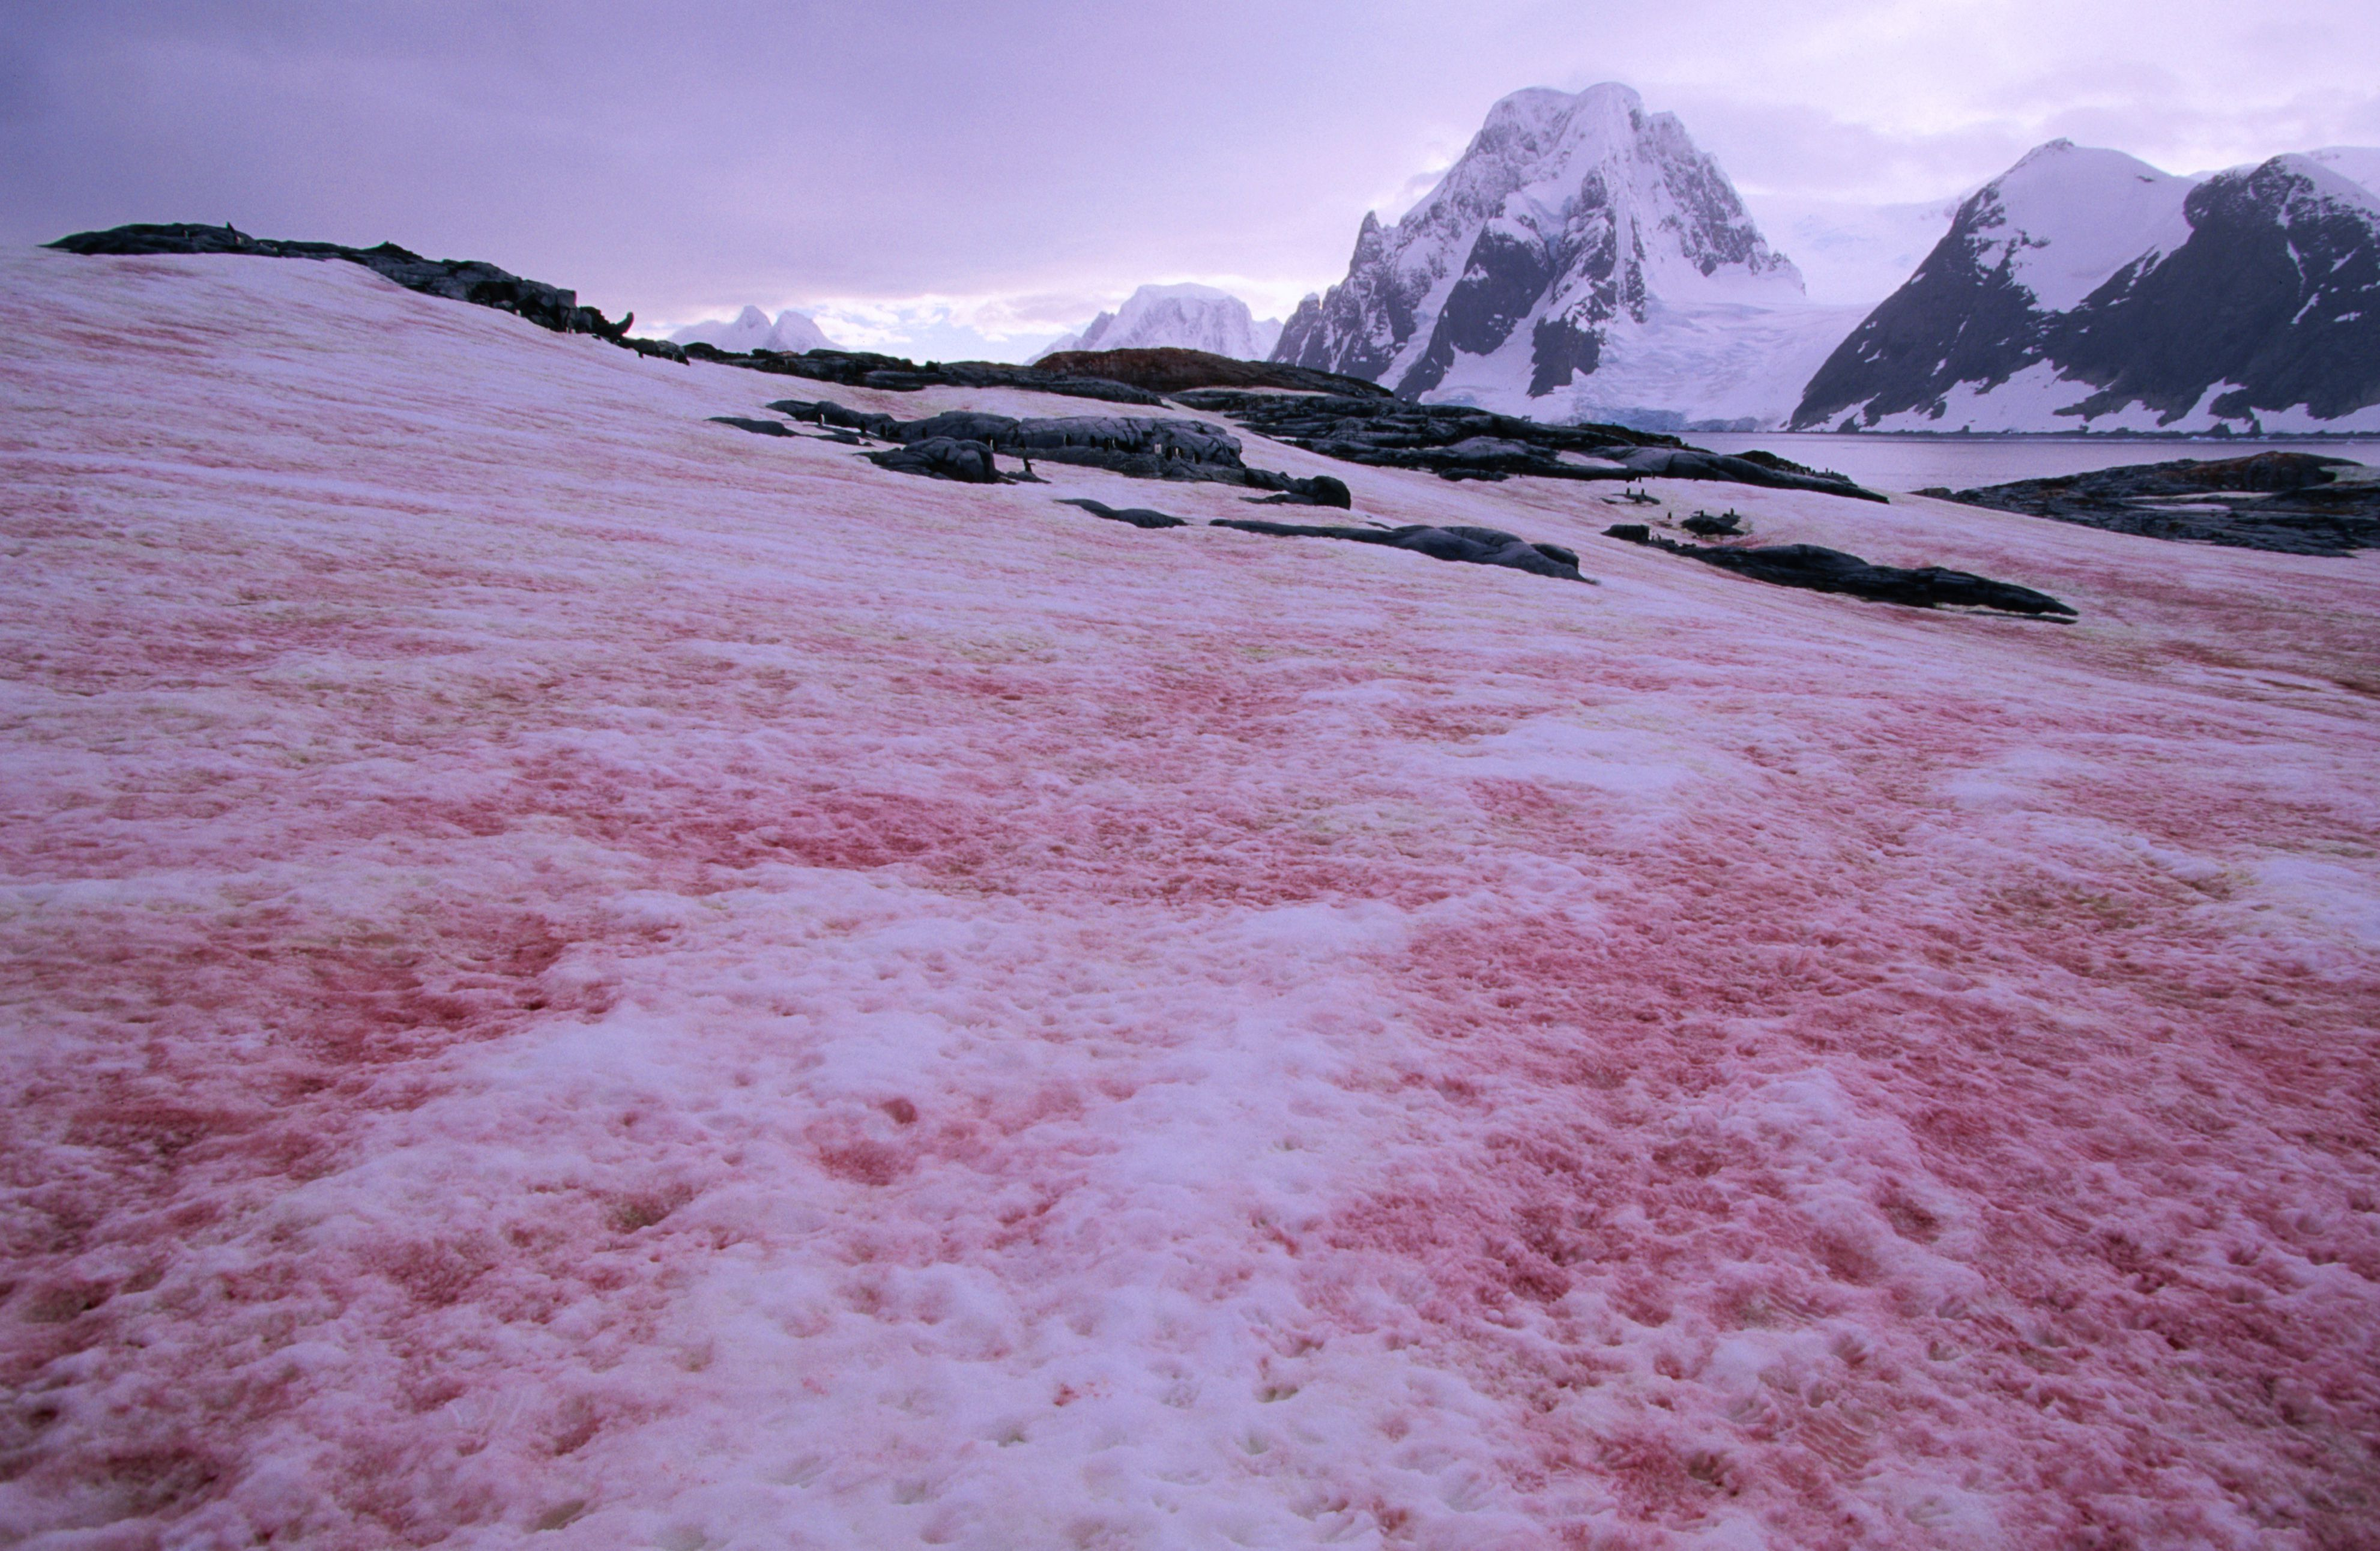 Definition of Red Snow by Merriam-Webster